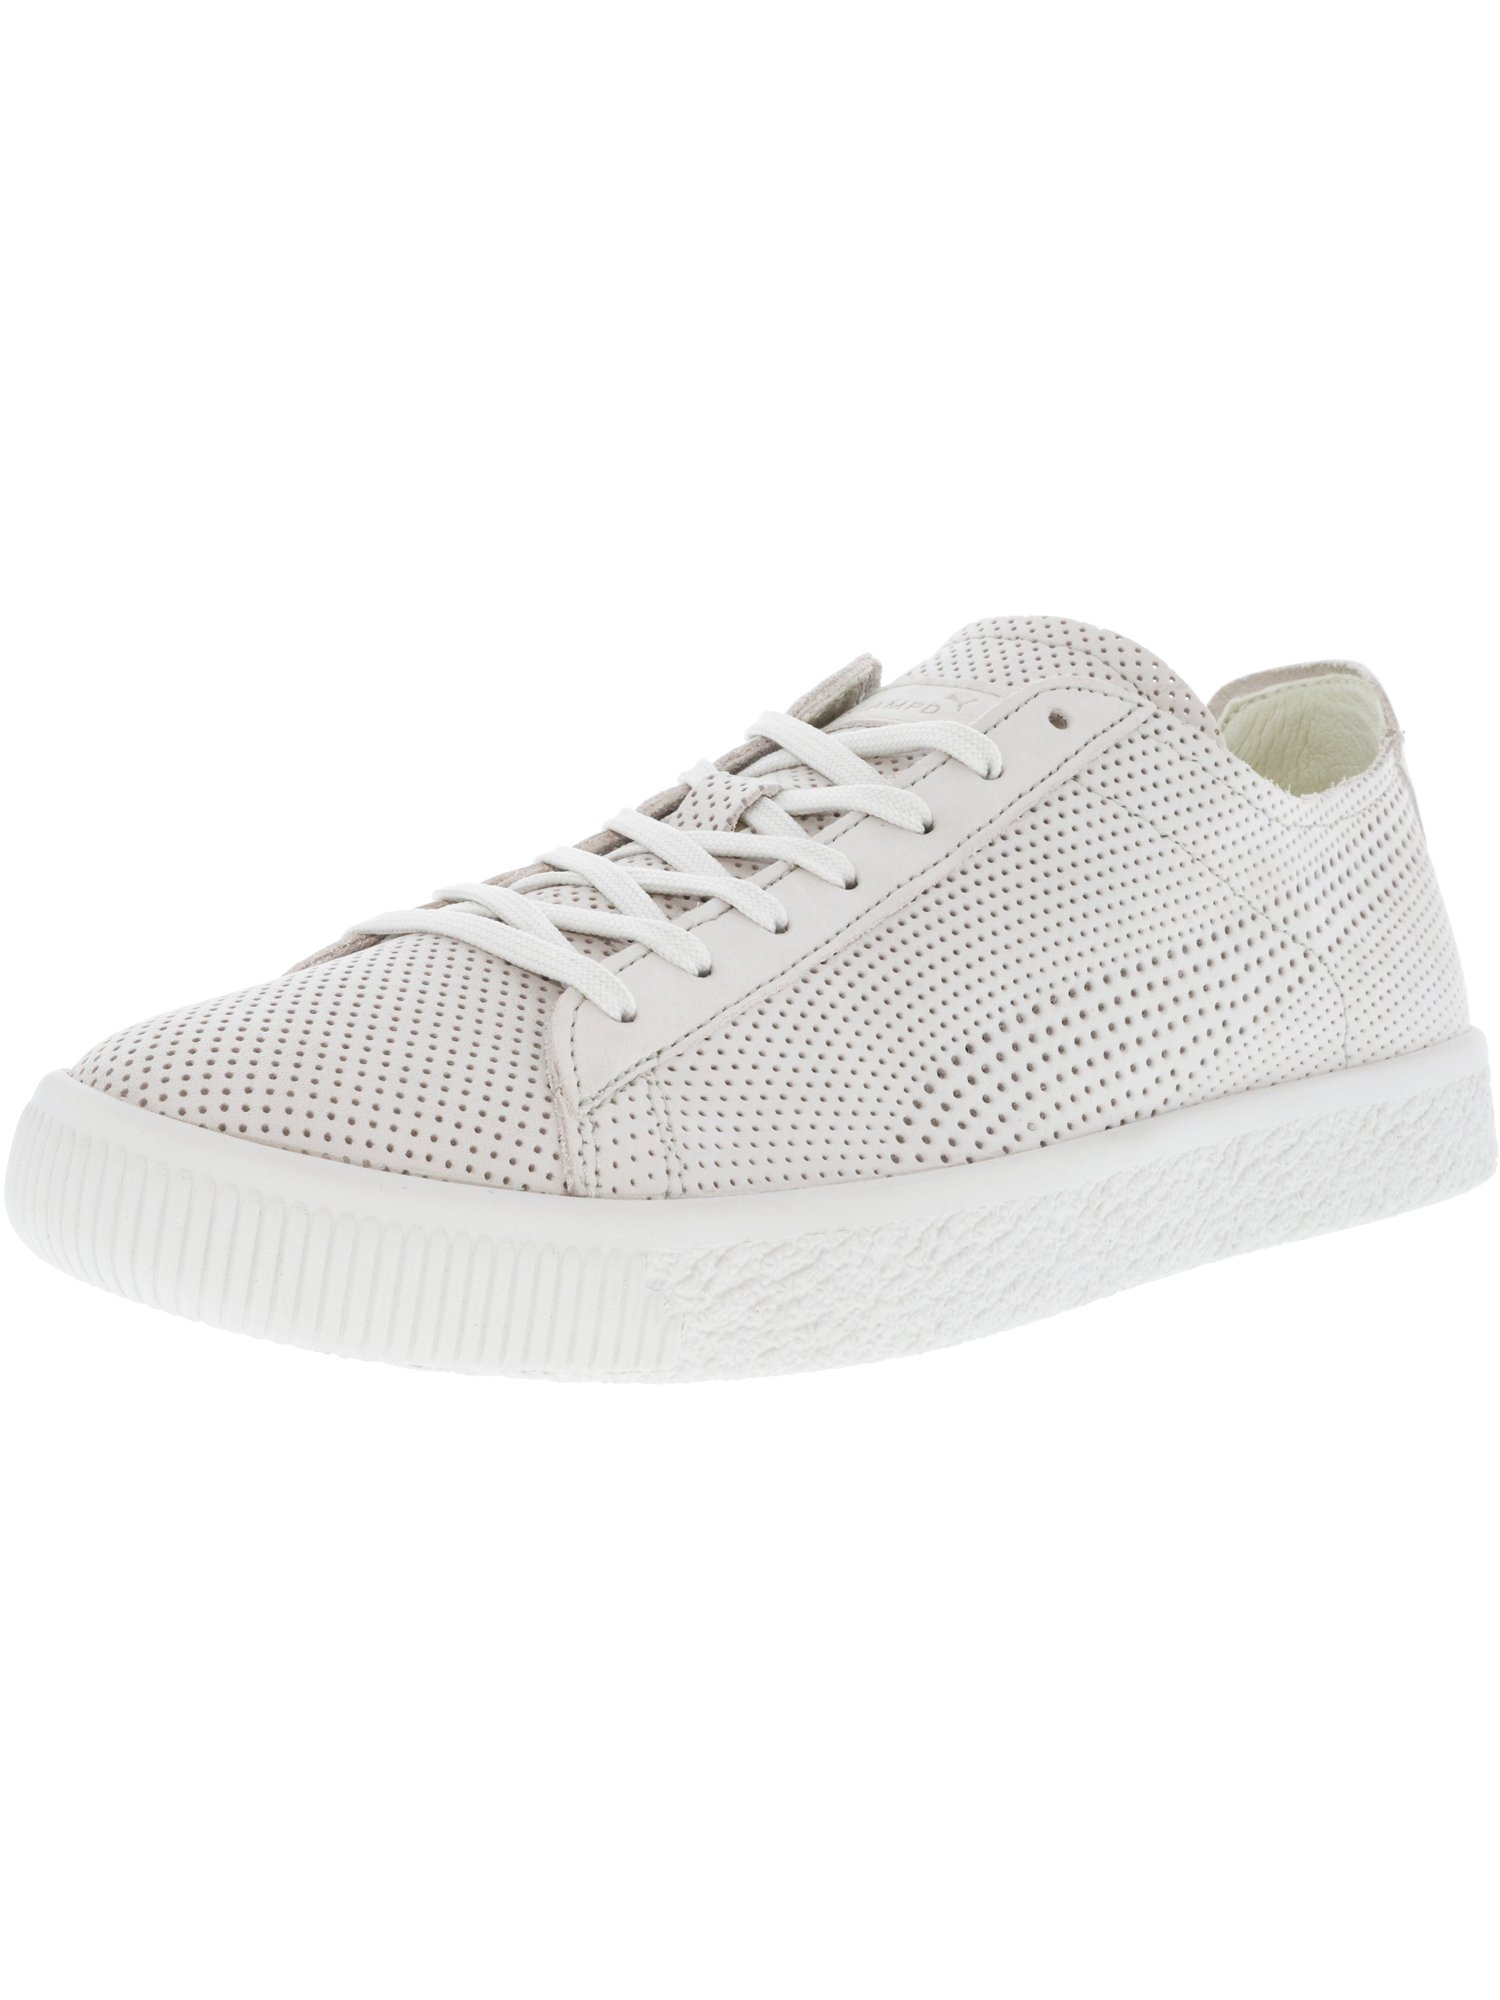 Puma Men's Stampd Clyde Grey Ankle-High Leather Fashion Sneaker - 9M